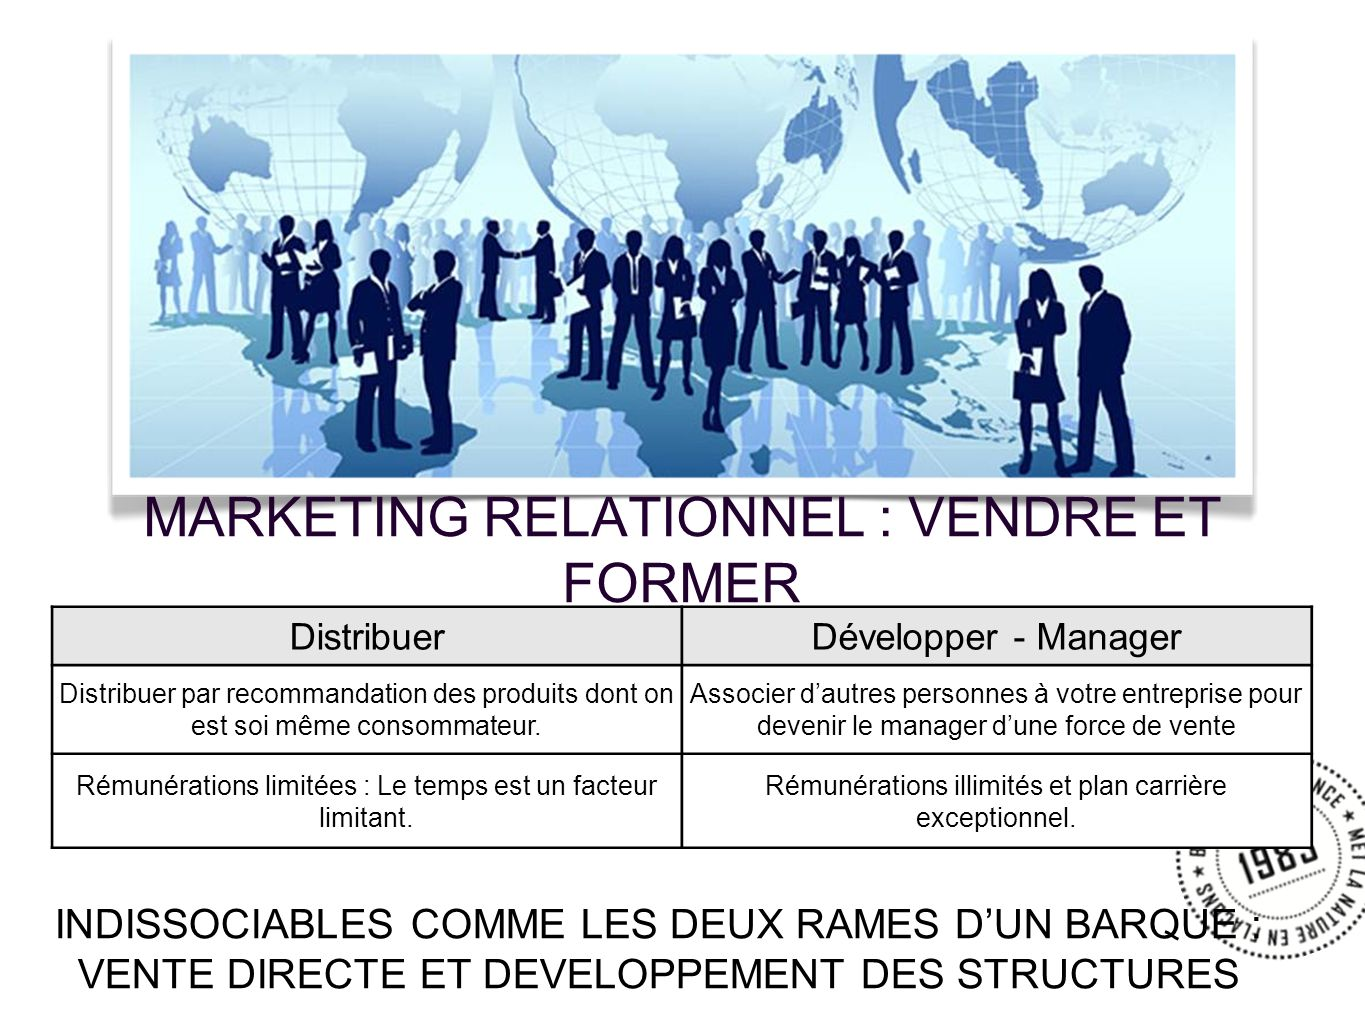 MARKETING RELATIONNEL : VENDRE ET FORMER